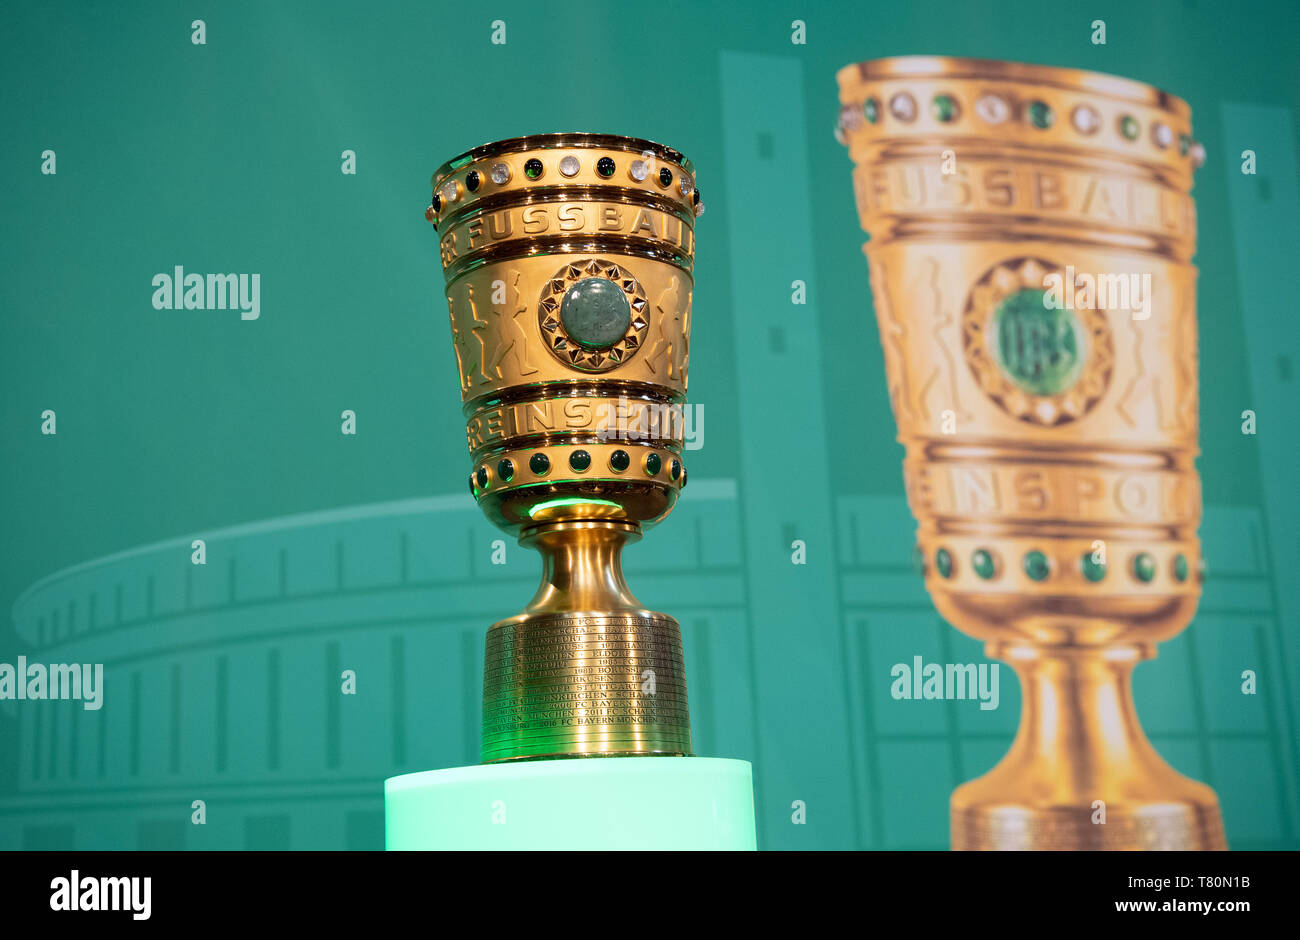 Berlin, Germany. 10th May, 2019. Soccer: DFB Cup, Cup Handover of the DFB Cup. The DFB Cup will be placed on a pedestal before the start of the event. Credit: Soeren Stache/dpa/Alamy Live News Stock Photo